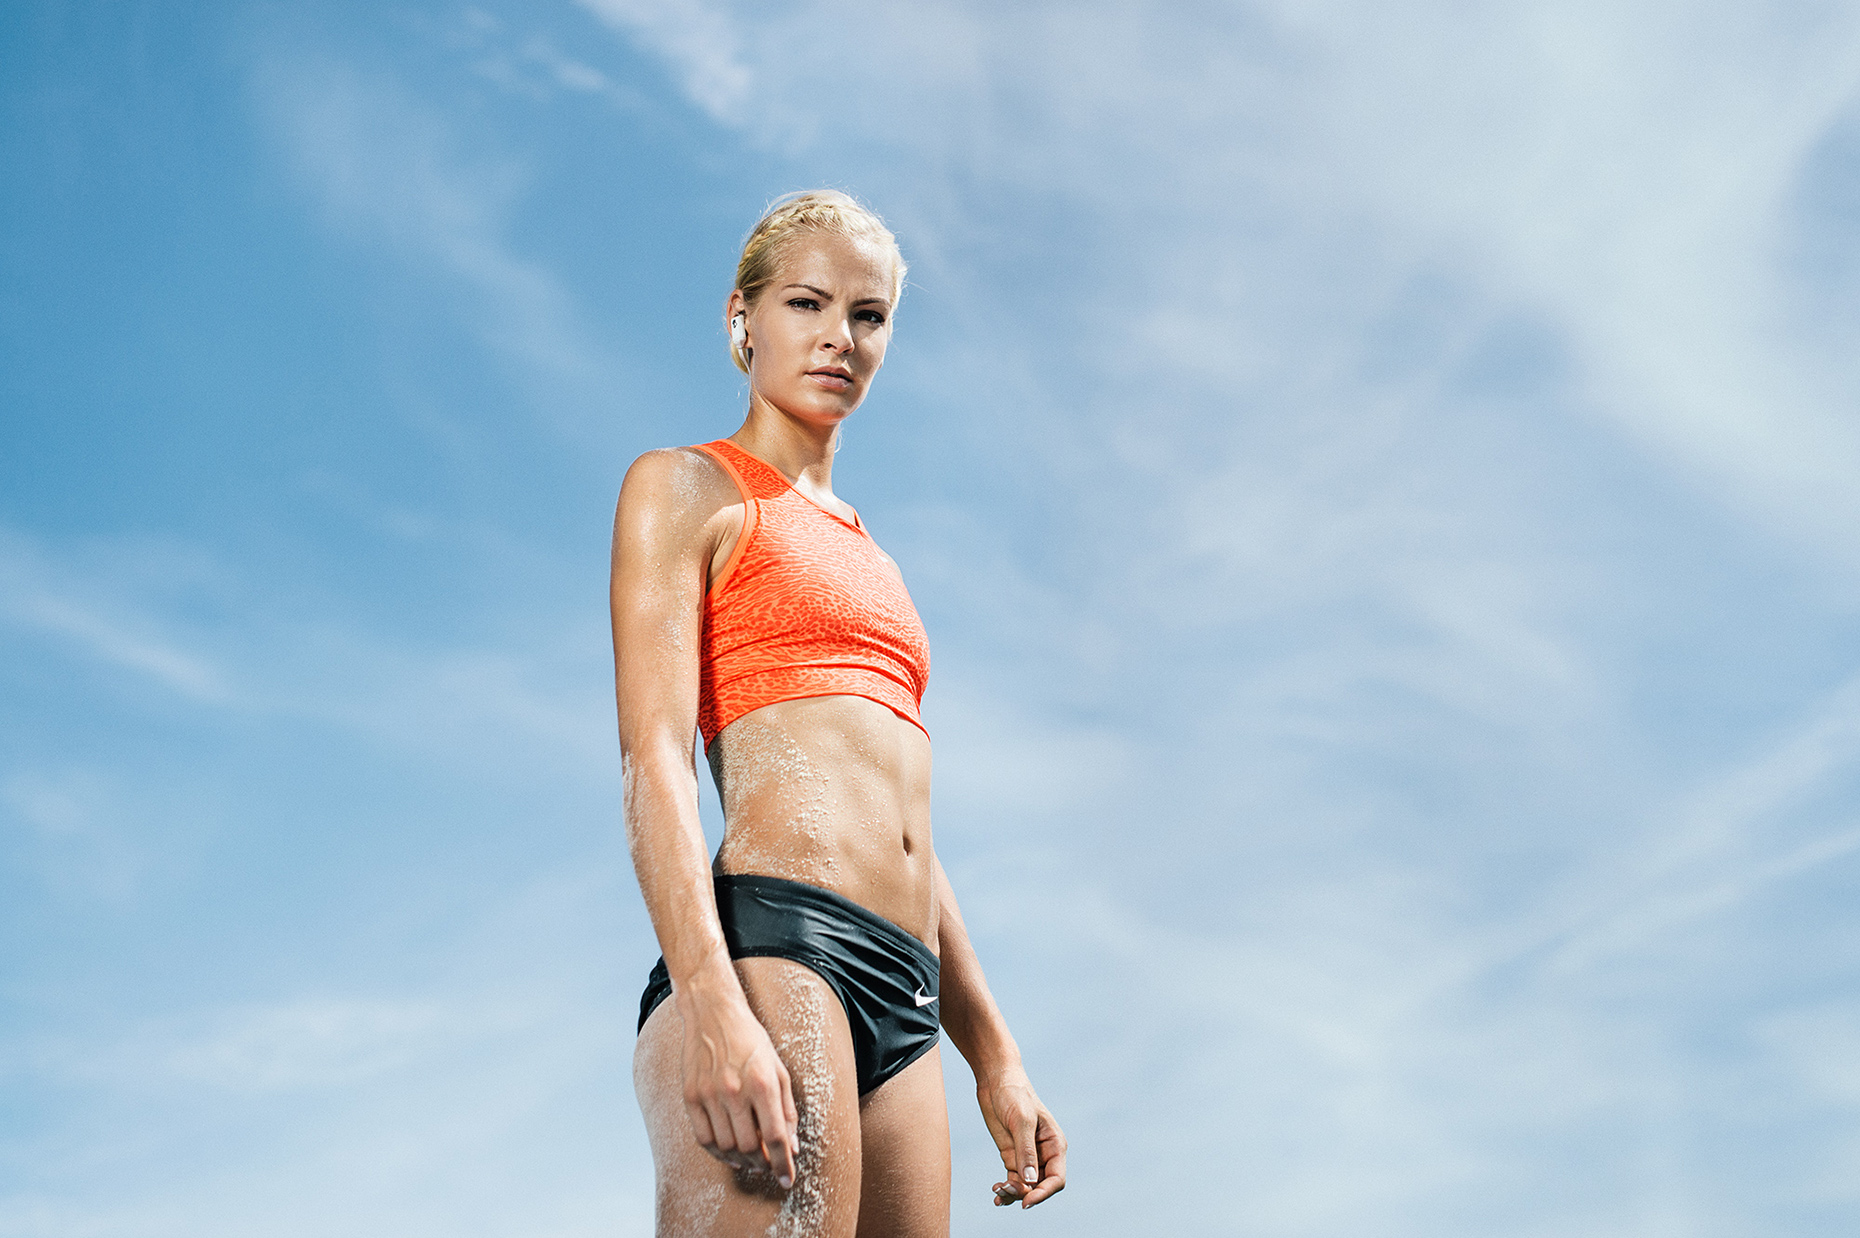 skullcandy_06252015-darya-klishina-2390